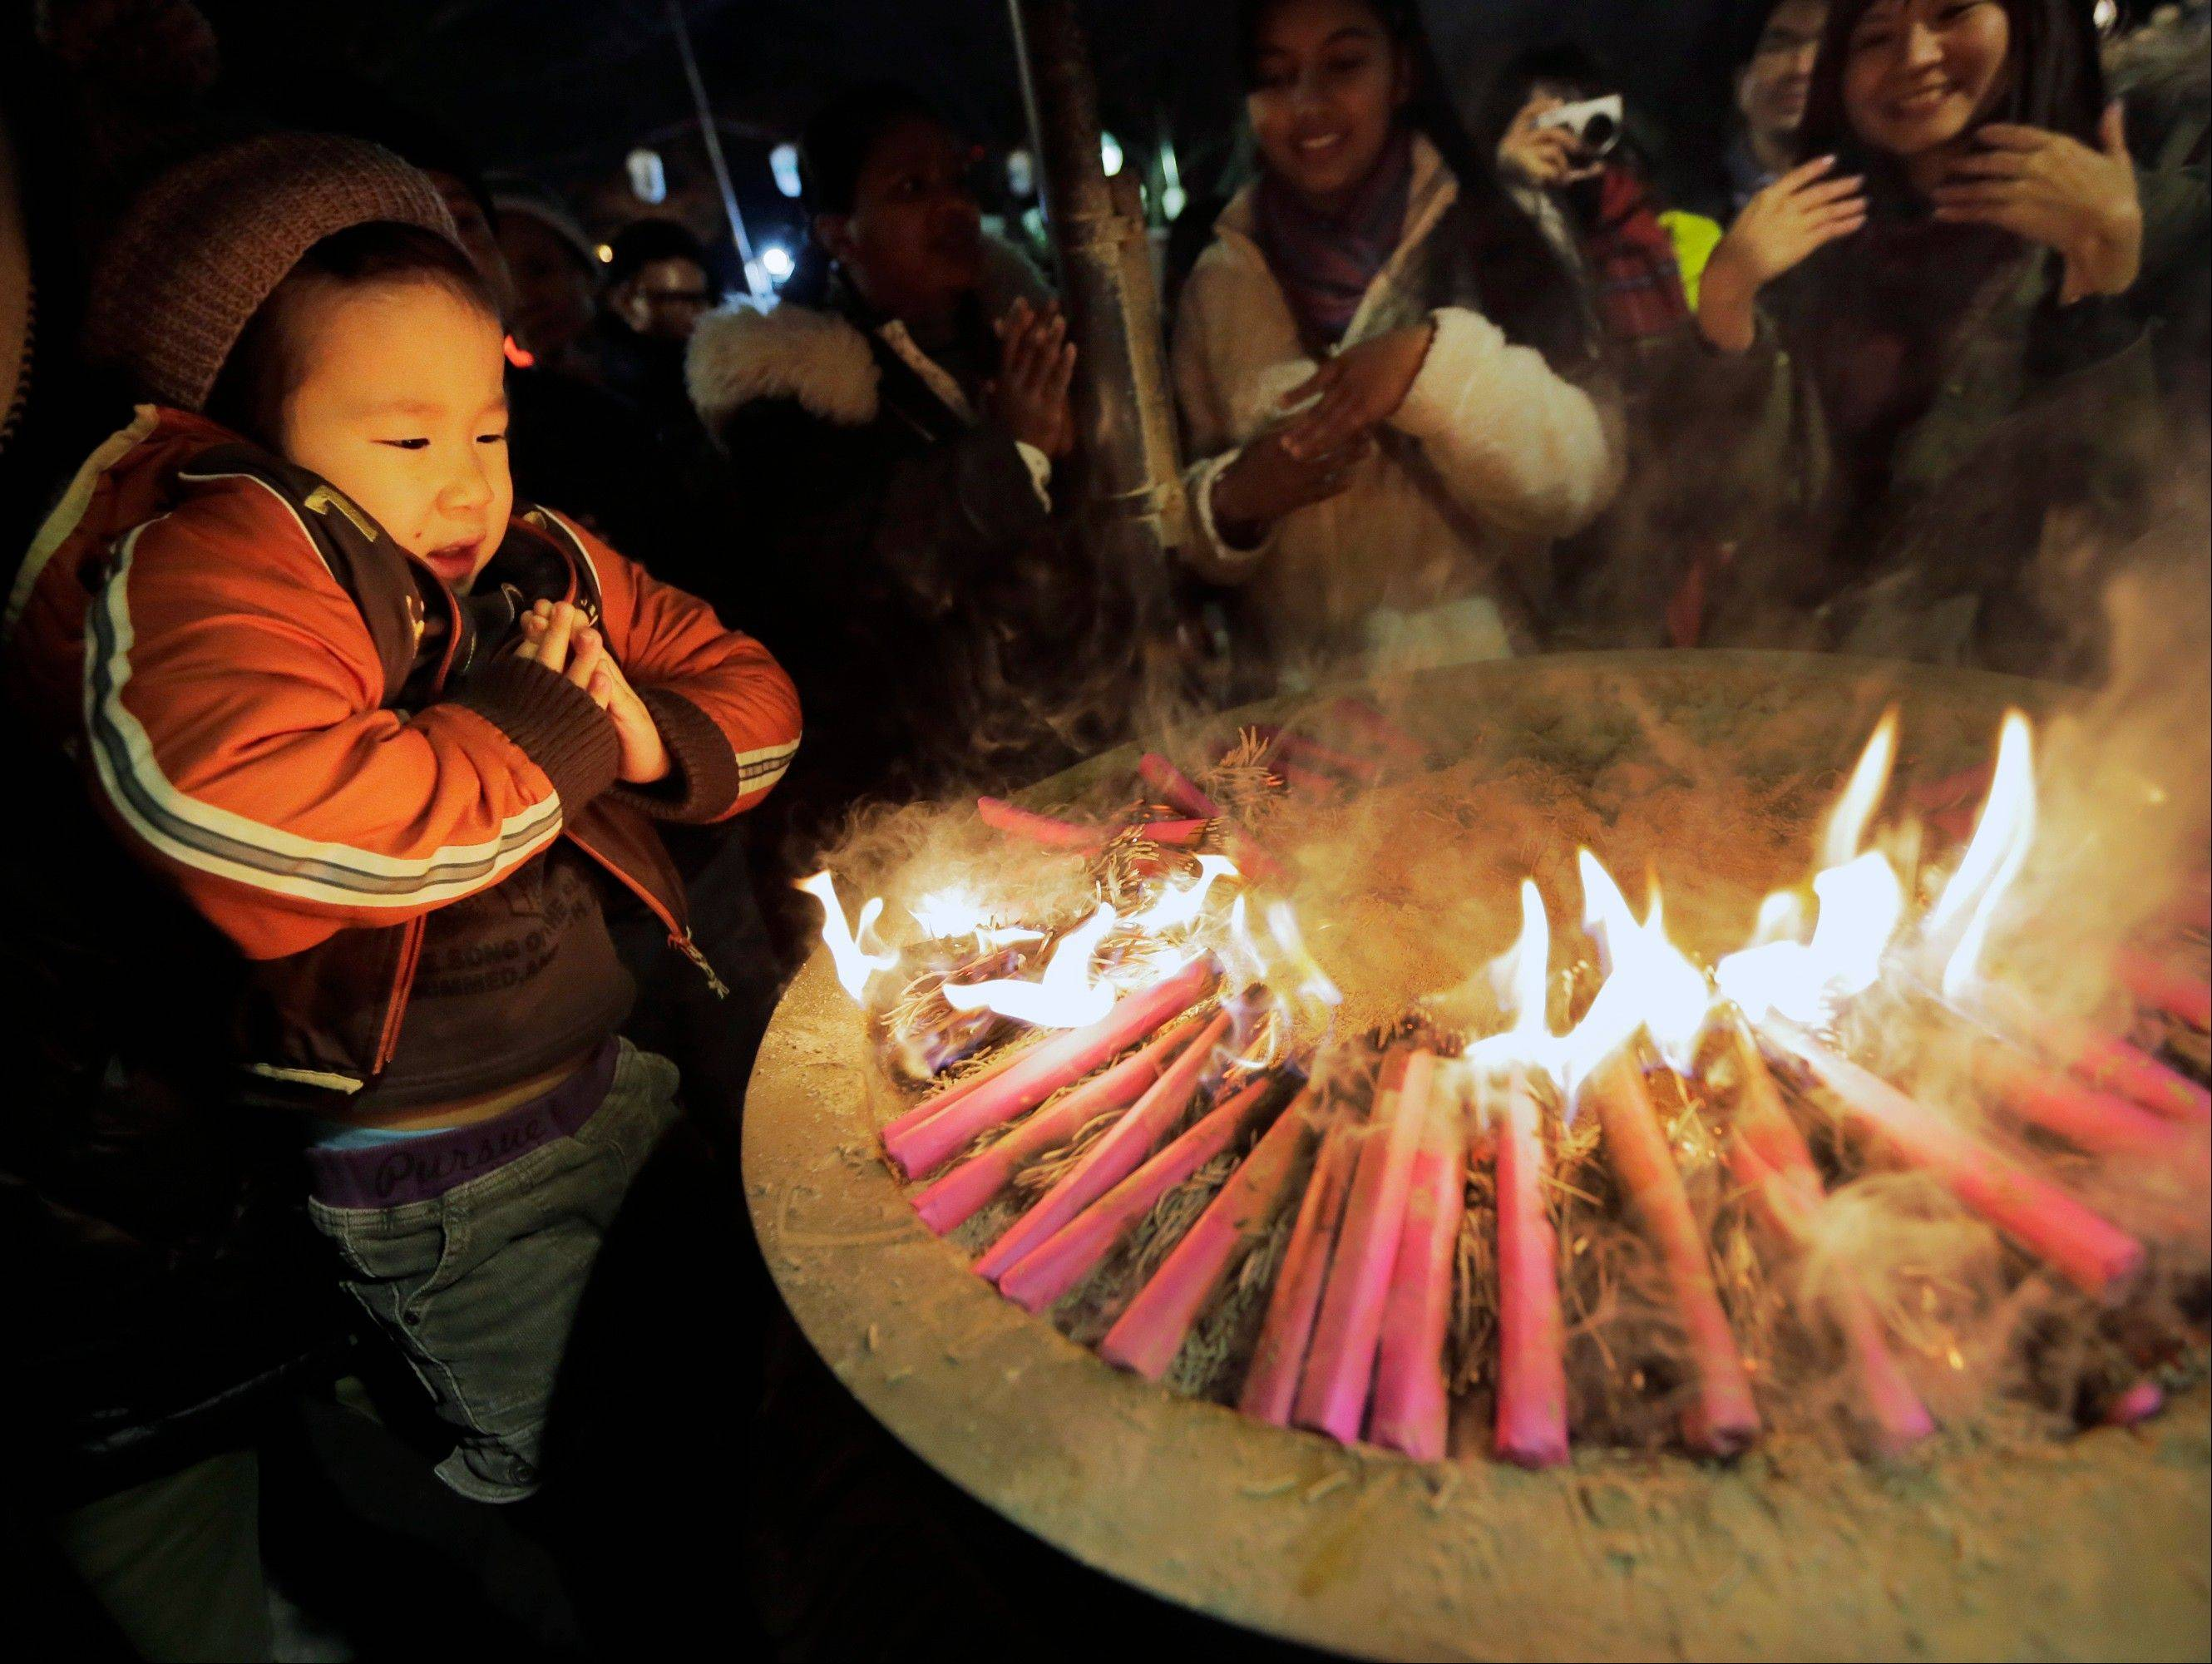 A boy prays around a fire believed to invoke divine help during their first visit of the year to the Zojoji Buddhist temple in Tokyo, Monday, Dec. 31, 2012.